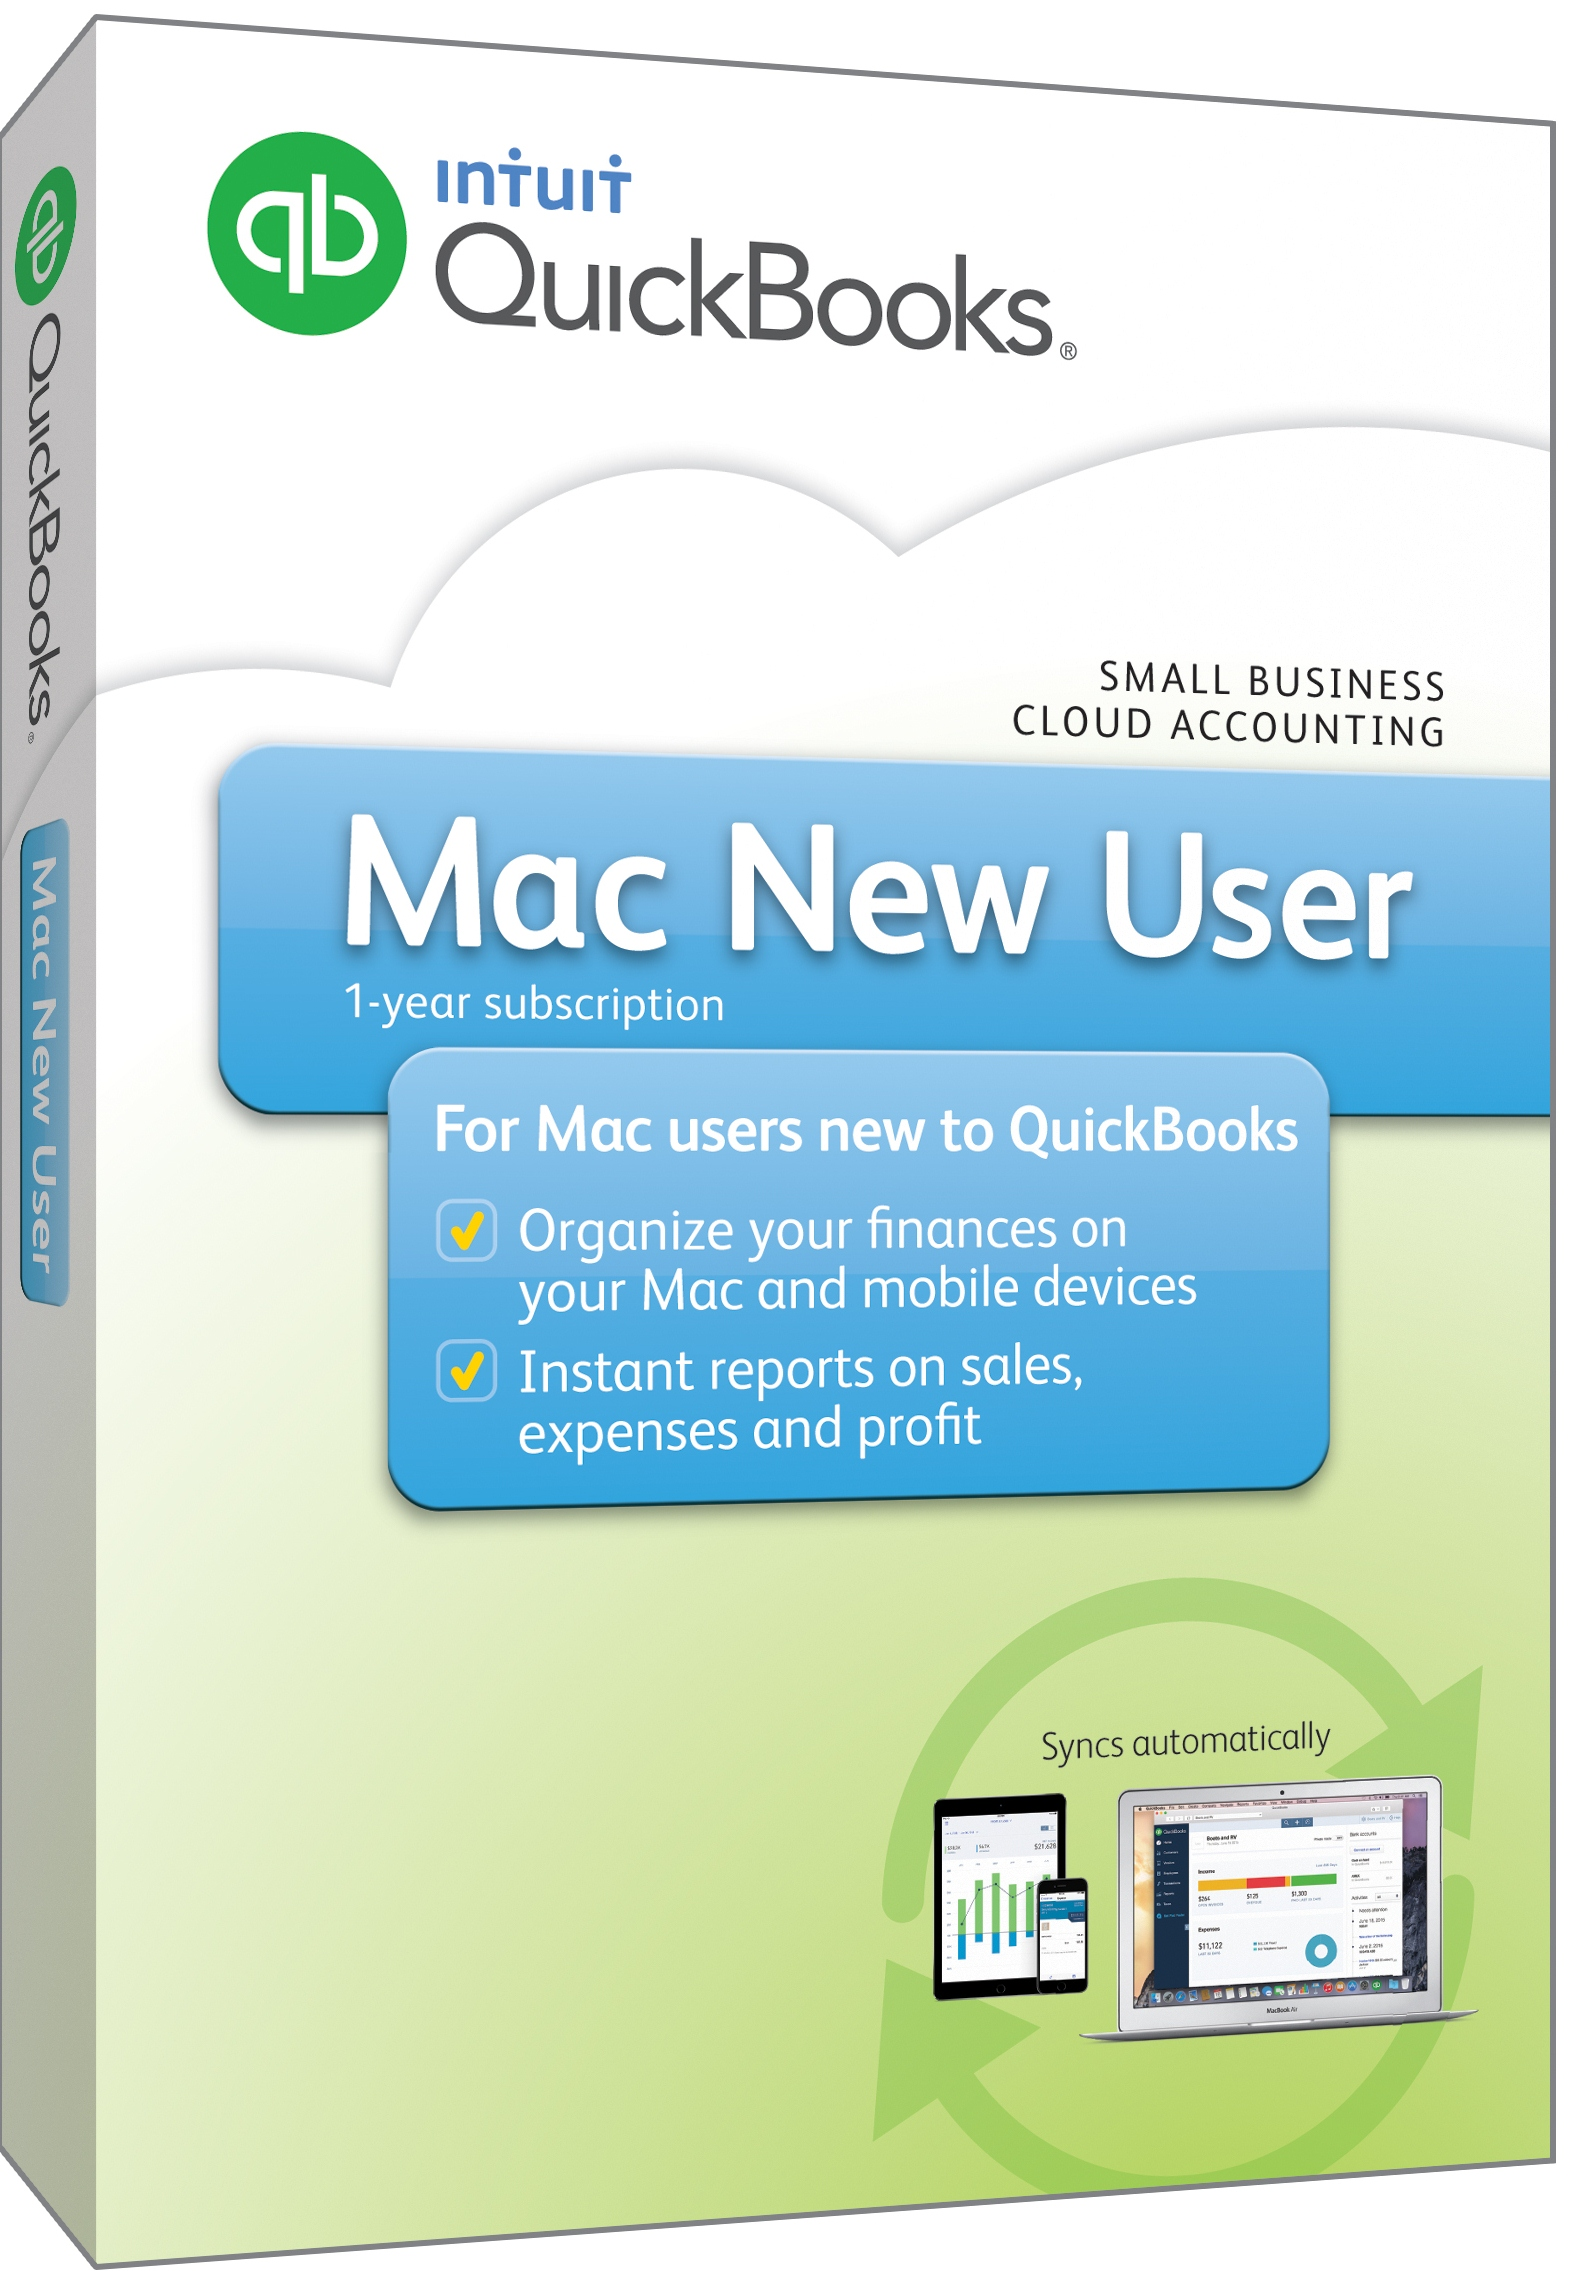 Where Does Quickbooks For Mac 2016 Store Images Of Invoices